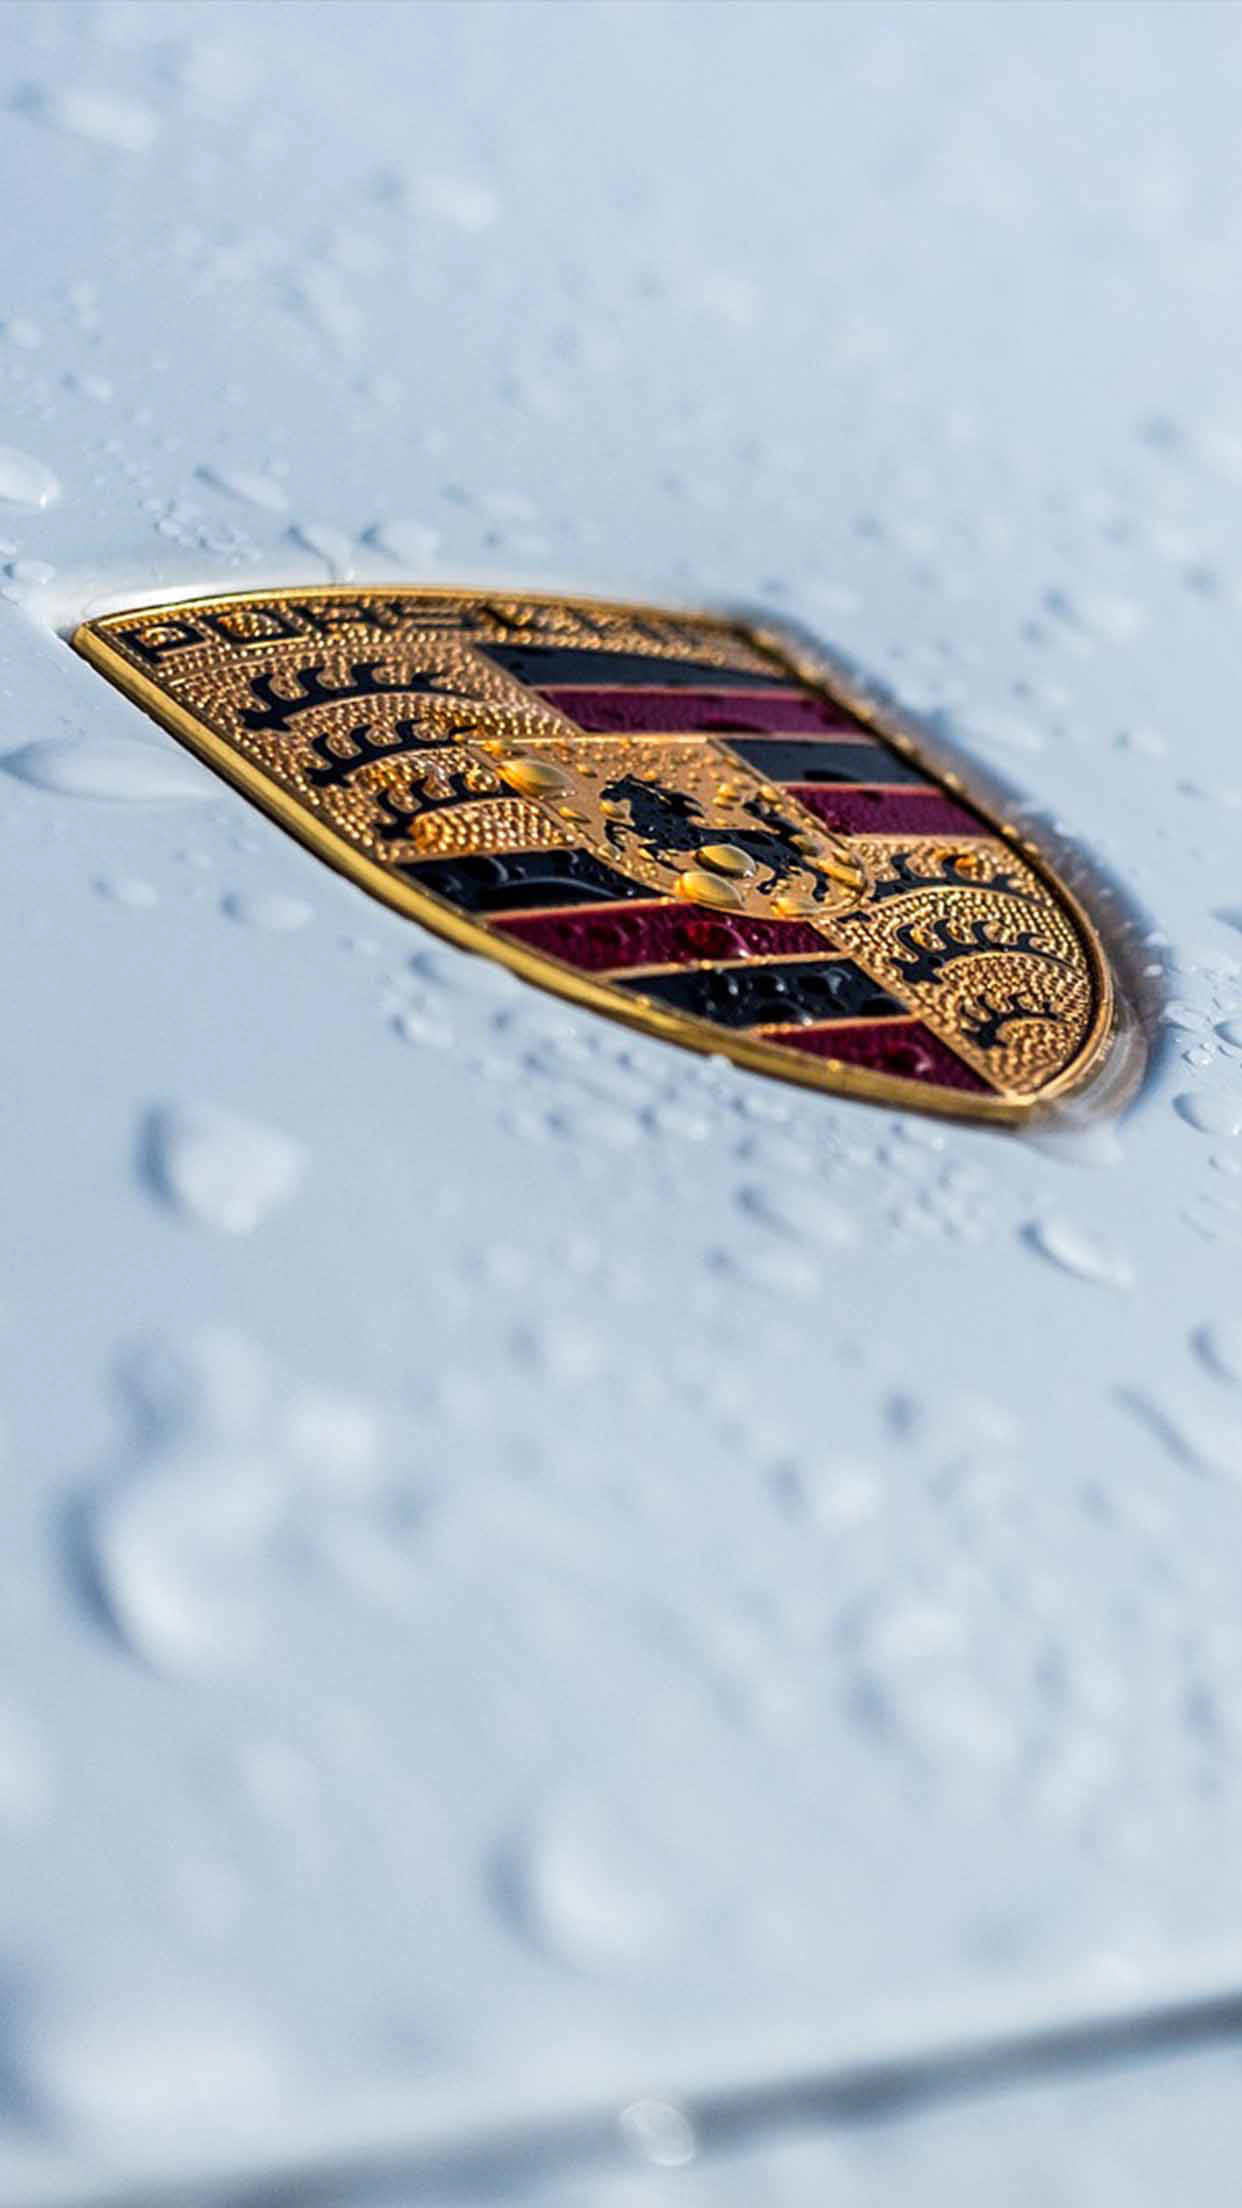 Porsche White Car logo wallpaper